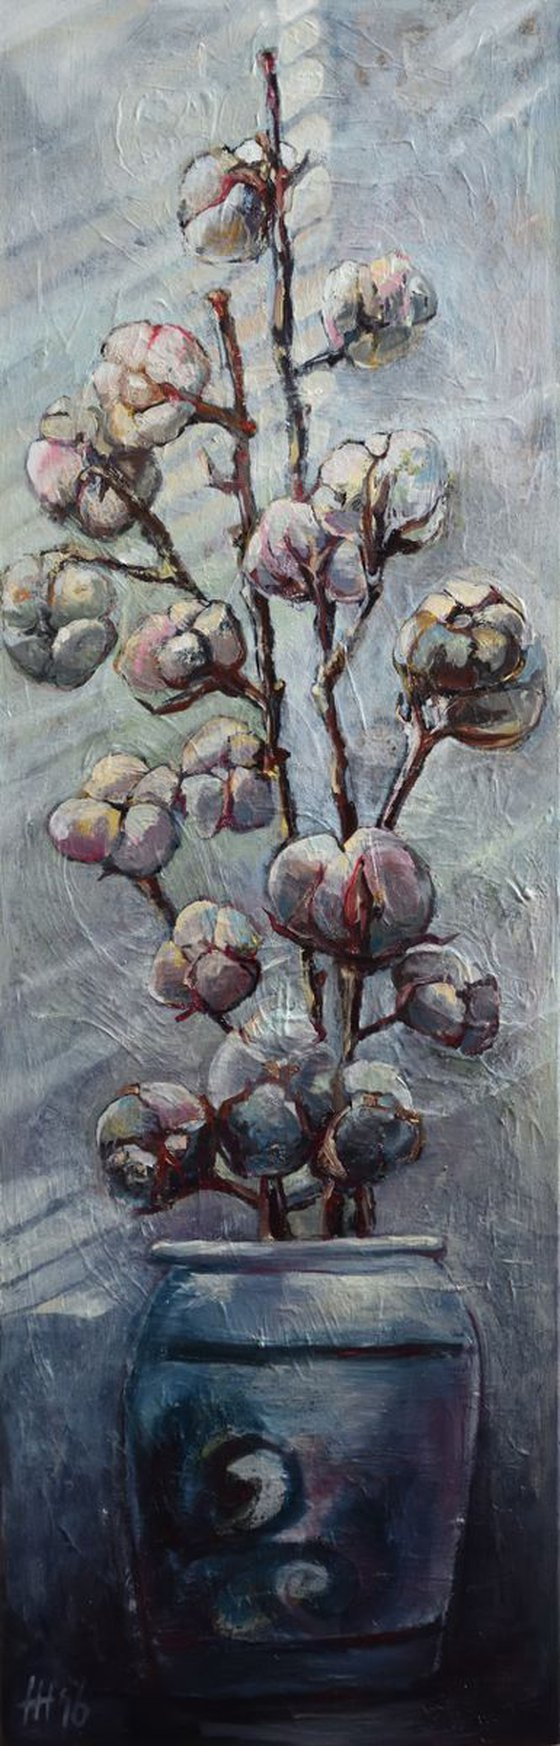 Still life with Cotton